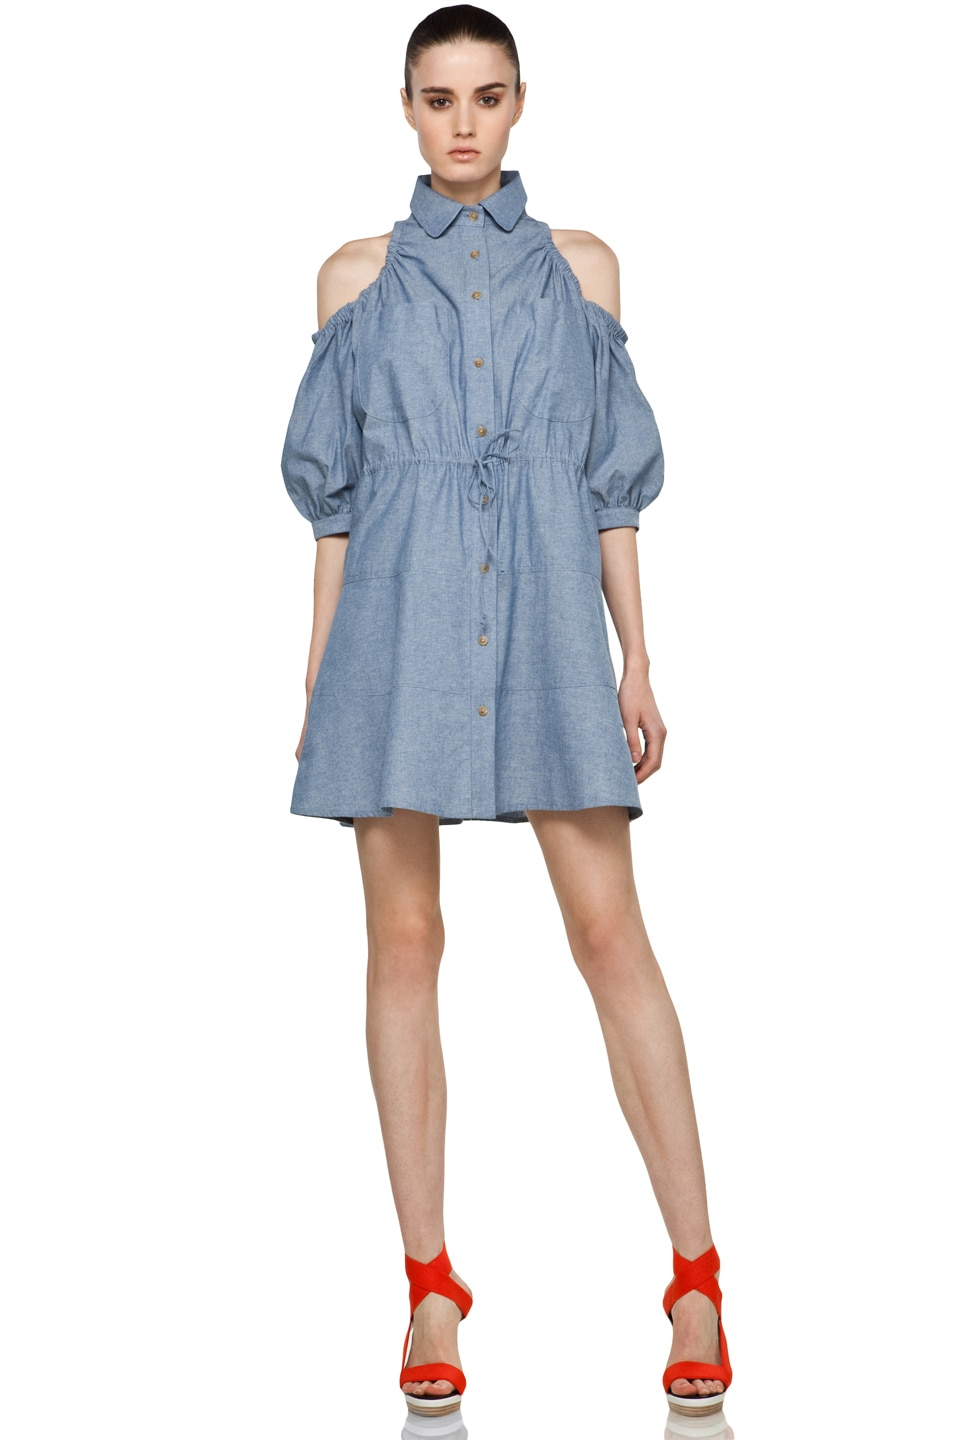 Image 1 of Chloe Sevigny for Opening Ceremony Cut Out Shoulder Blouse Dress in Chambray Blue